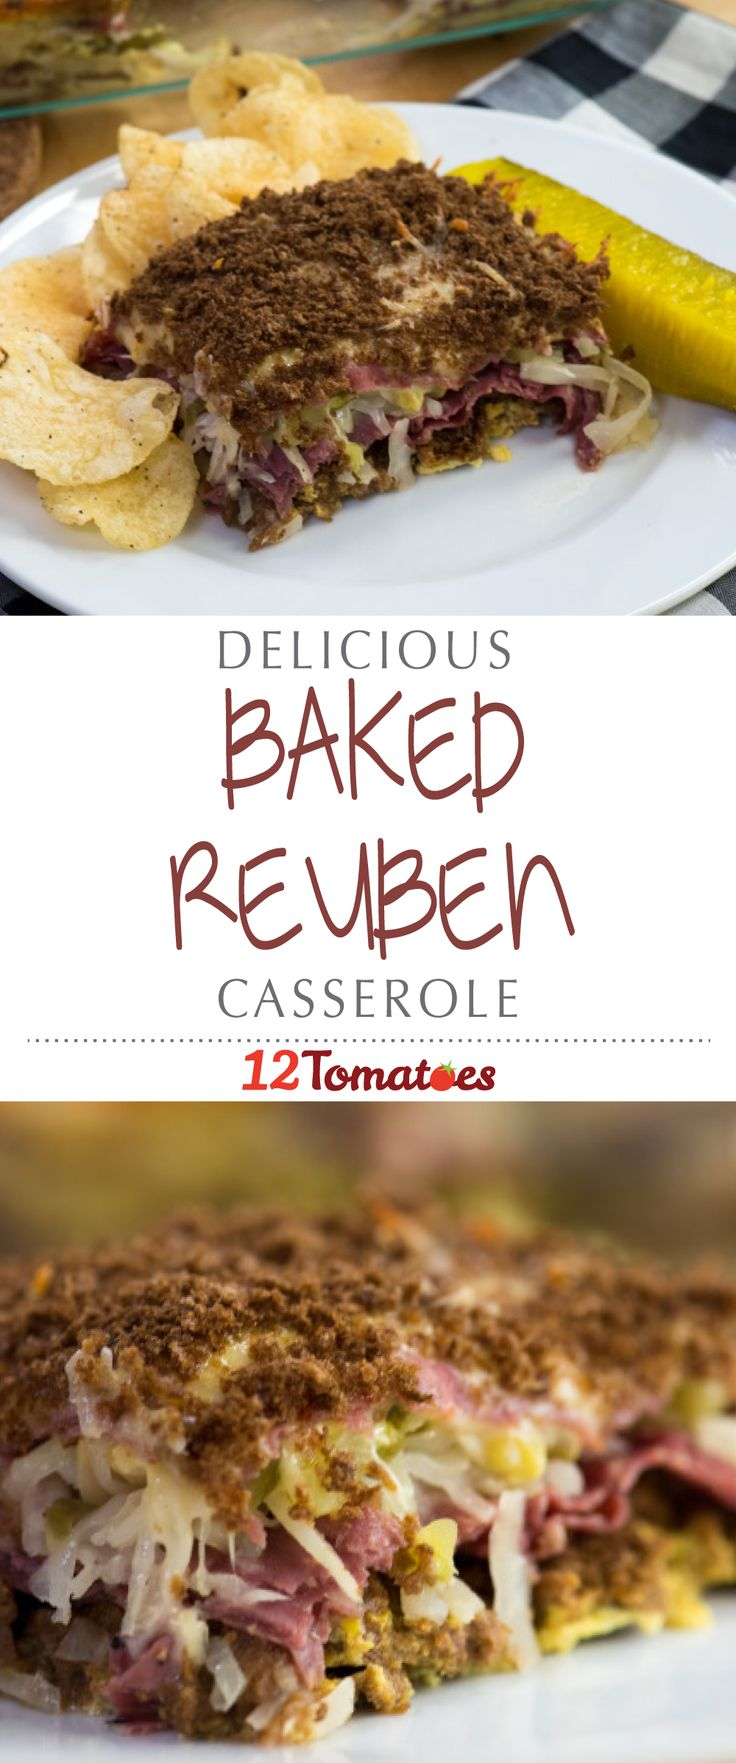 Oven-Baked Reuben Casserole | Filled with rye bread cubes, your choice of pastrami or corned beef, sauerkraut, pickles and Thousand Island dressing, this casserole tastes just like our favorite hot sammy!